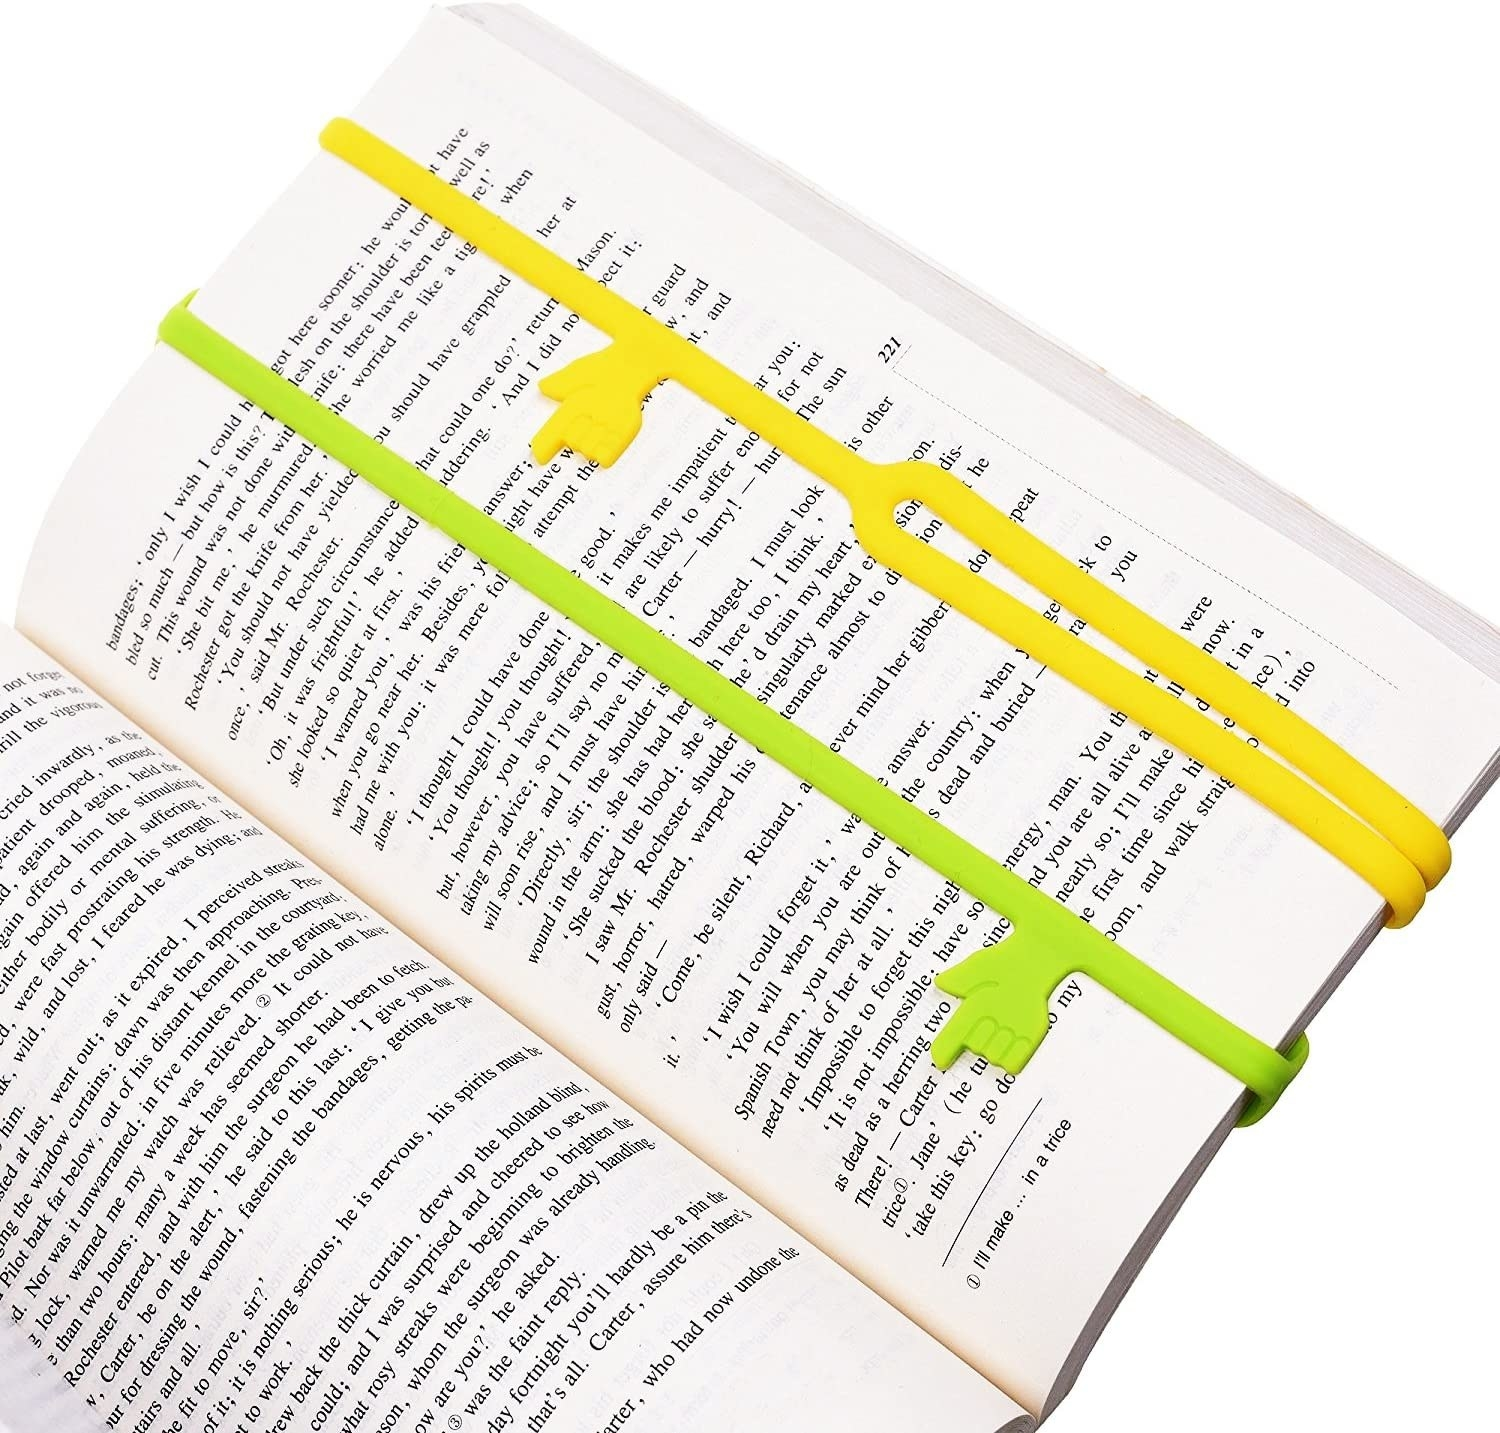 Two silicone bookmarks pointing to different lines on the same page